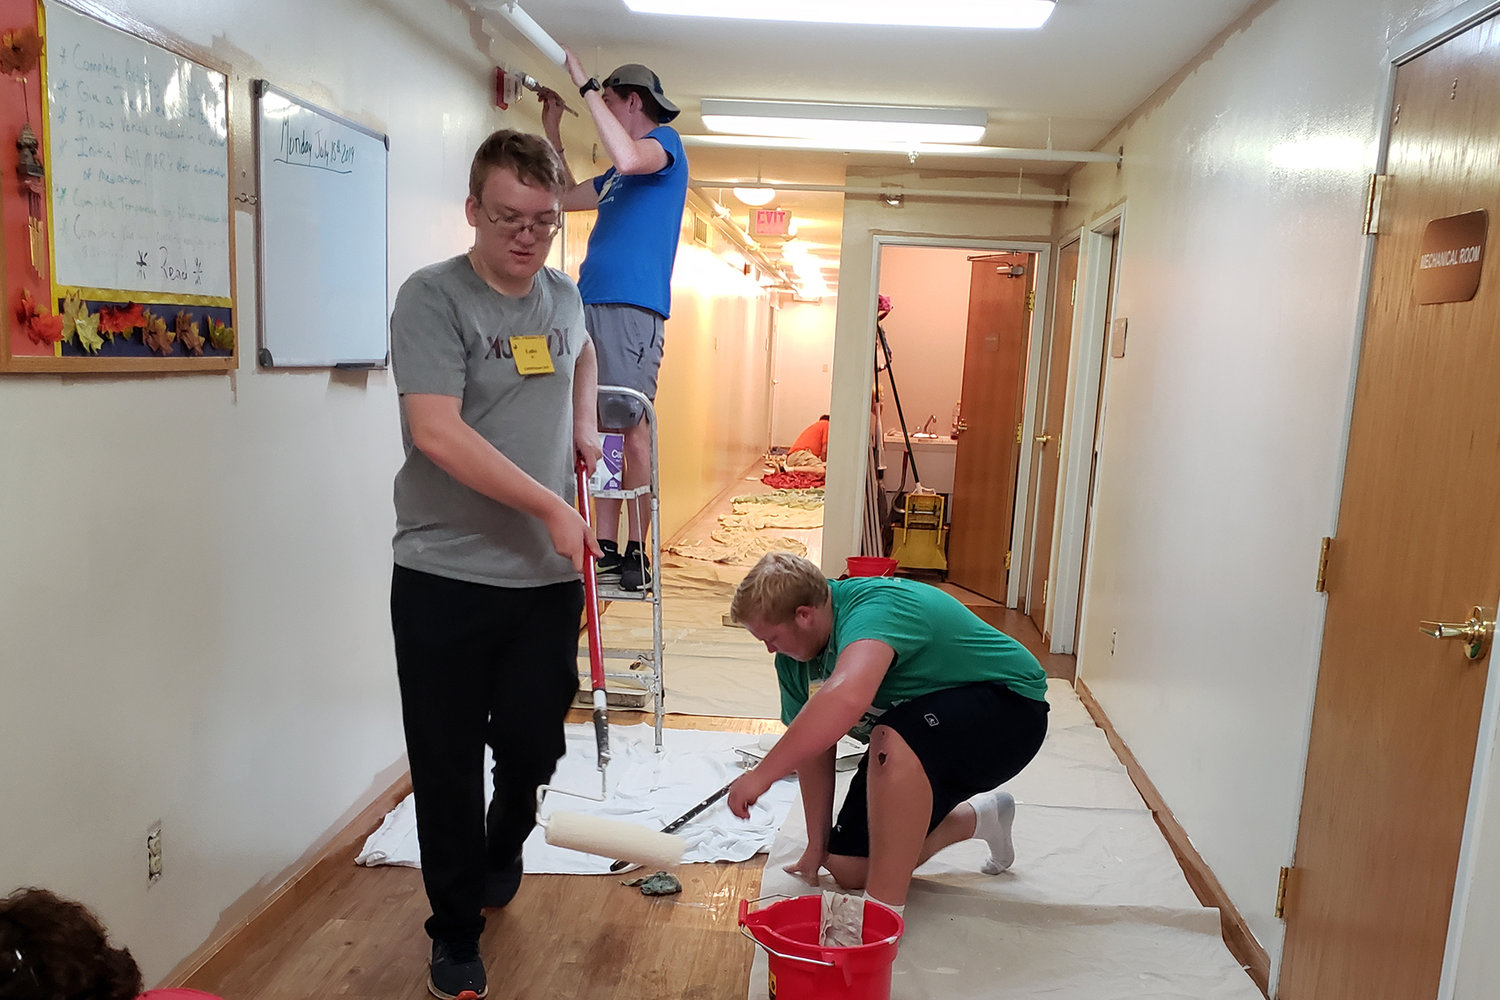 Teams of participants in this year's CHRISTpower weeklong summer service and reflection retreat for Catholic teen-agers in the Jefferson City diocese take part in an array of service projects in the Jefferson City area.